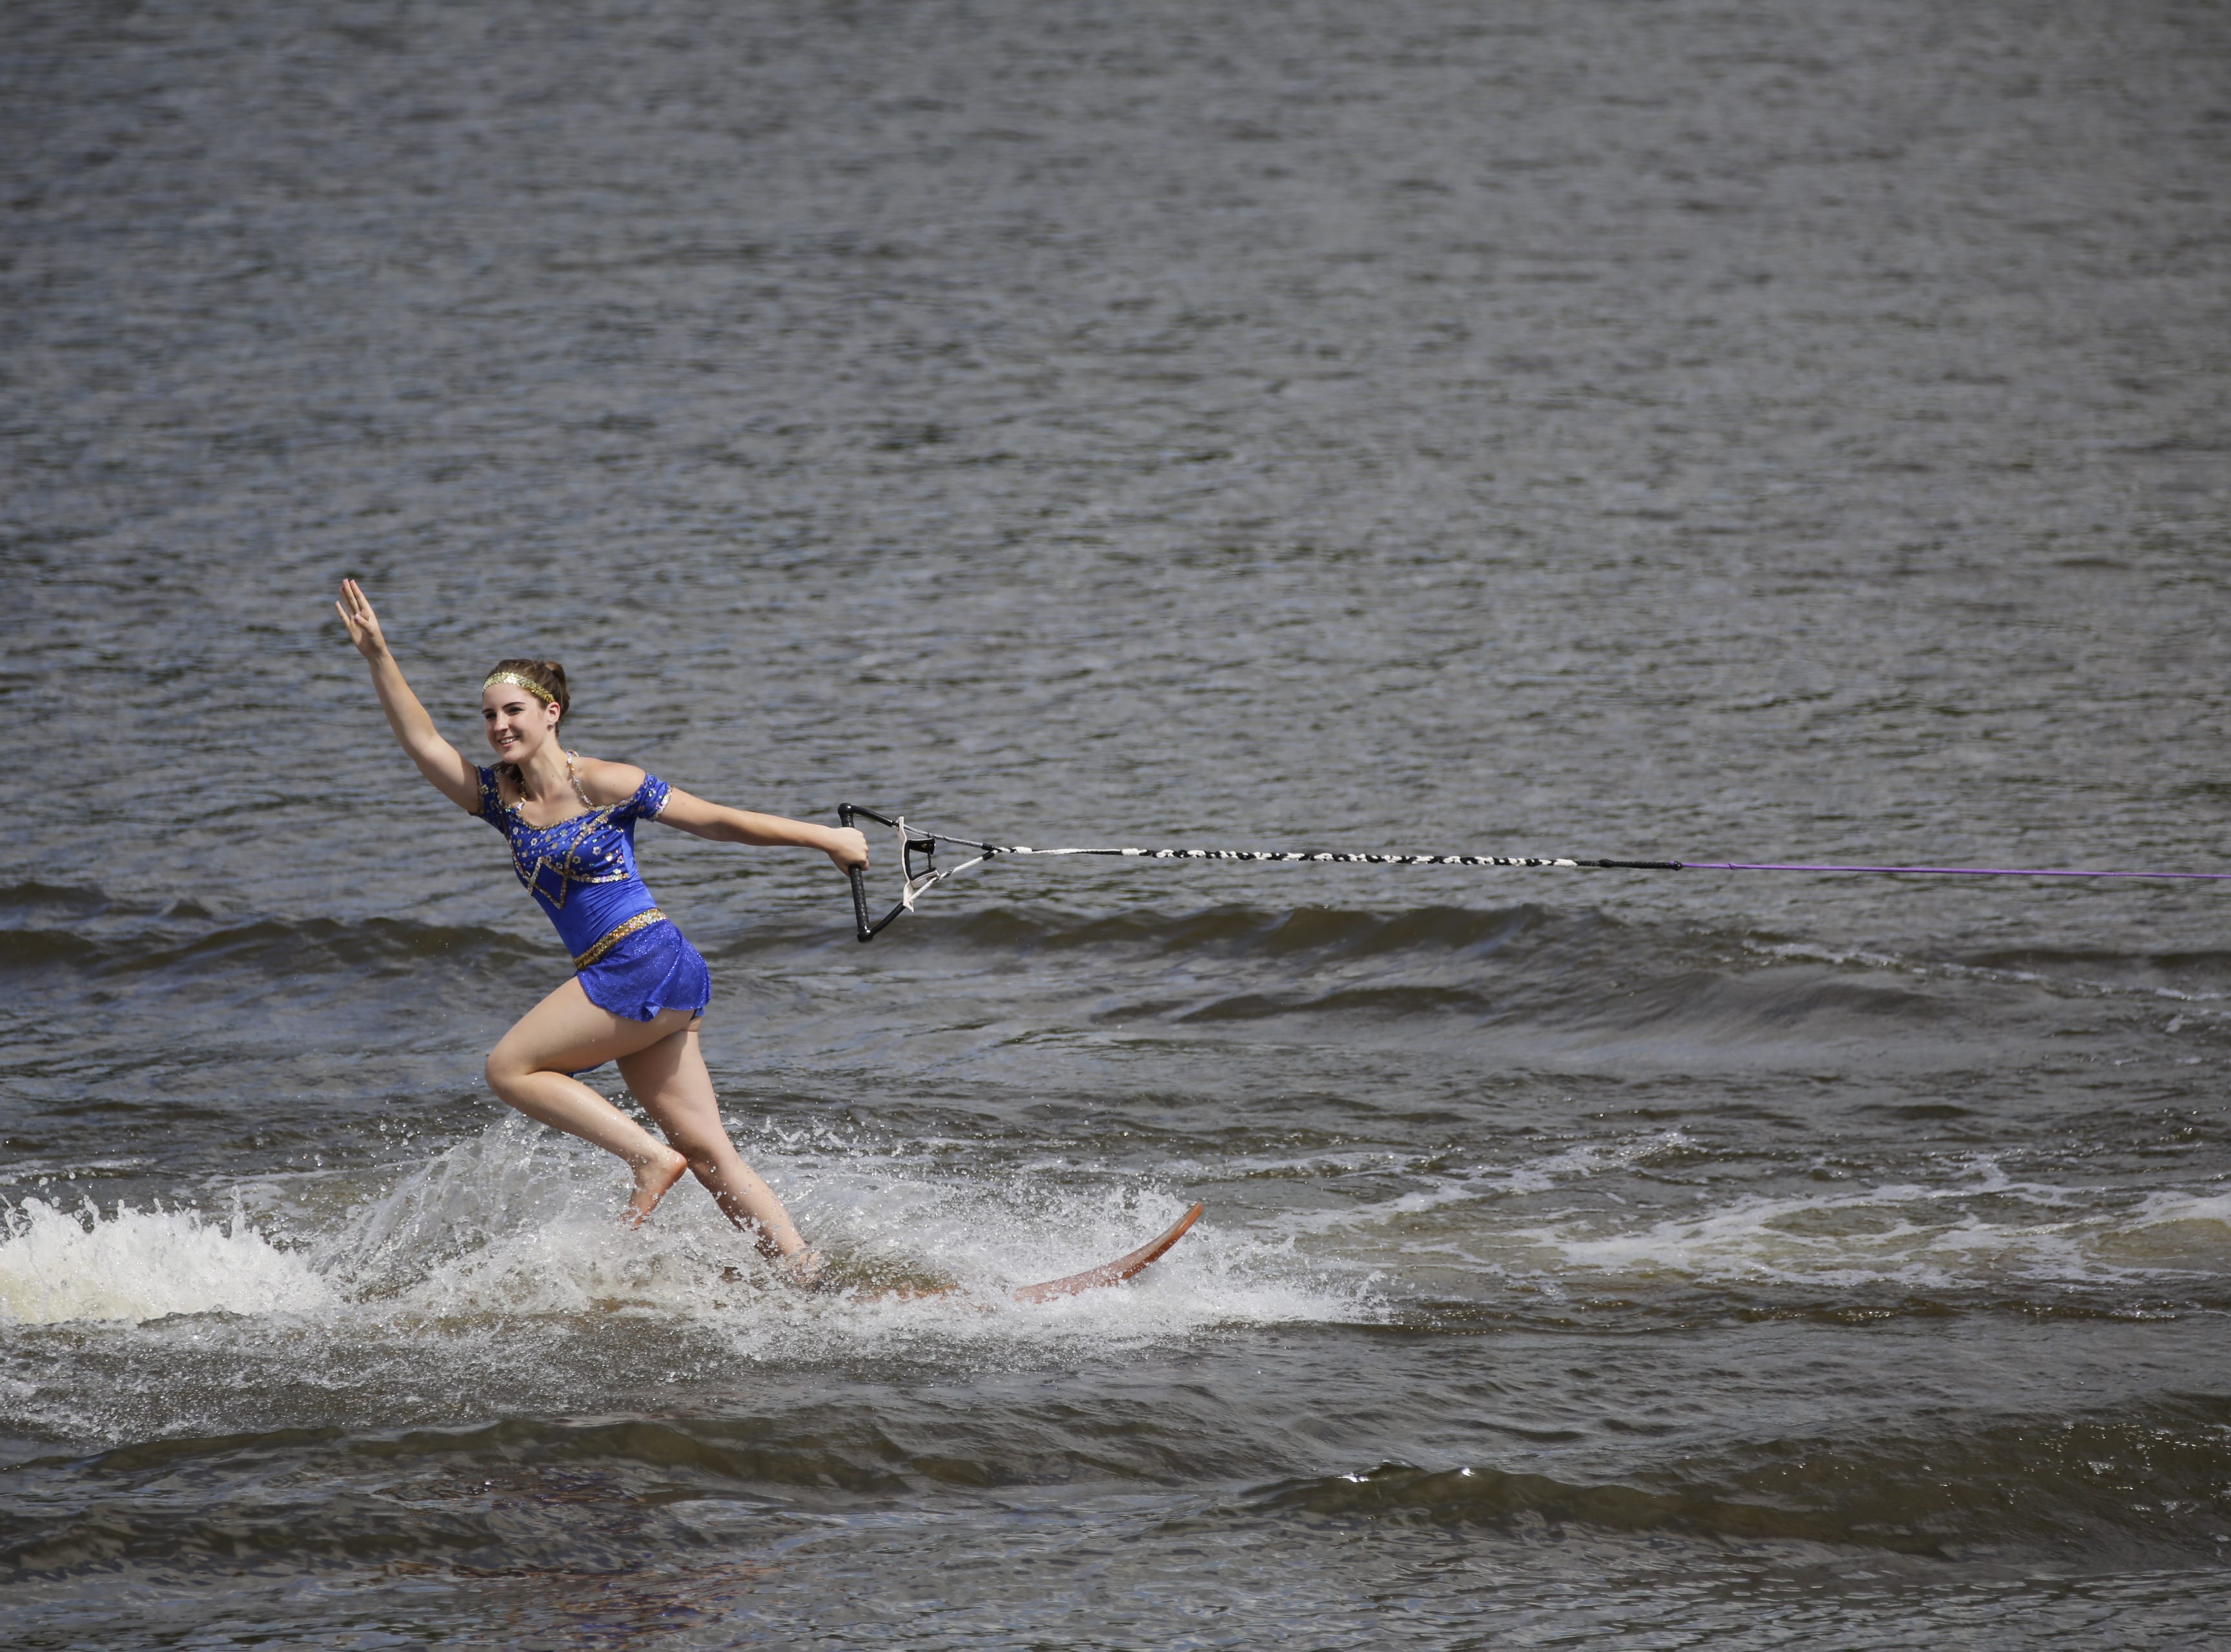 Colleen Redding competes in the swivel category during the Wisconsin State Water Ski Show Championships on Lake Wazeecha in Kellner Thursday, July 19, 2018.